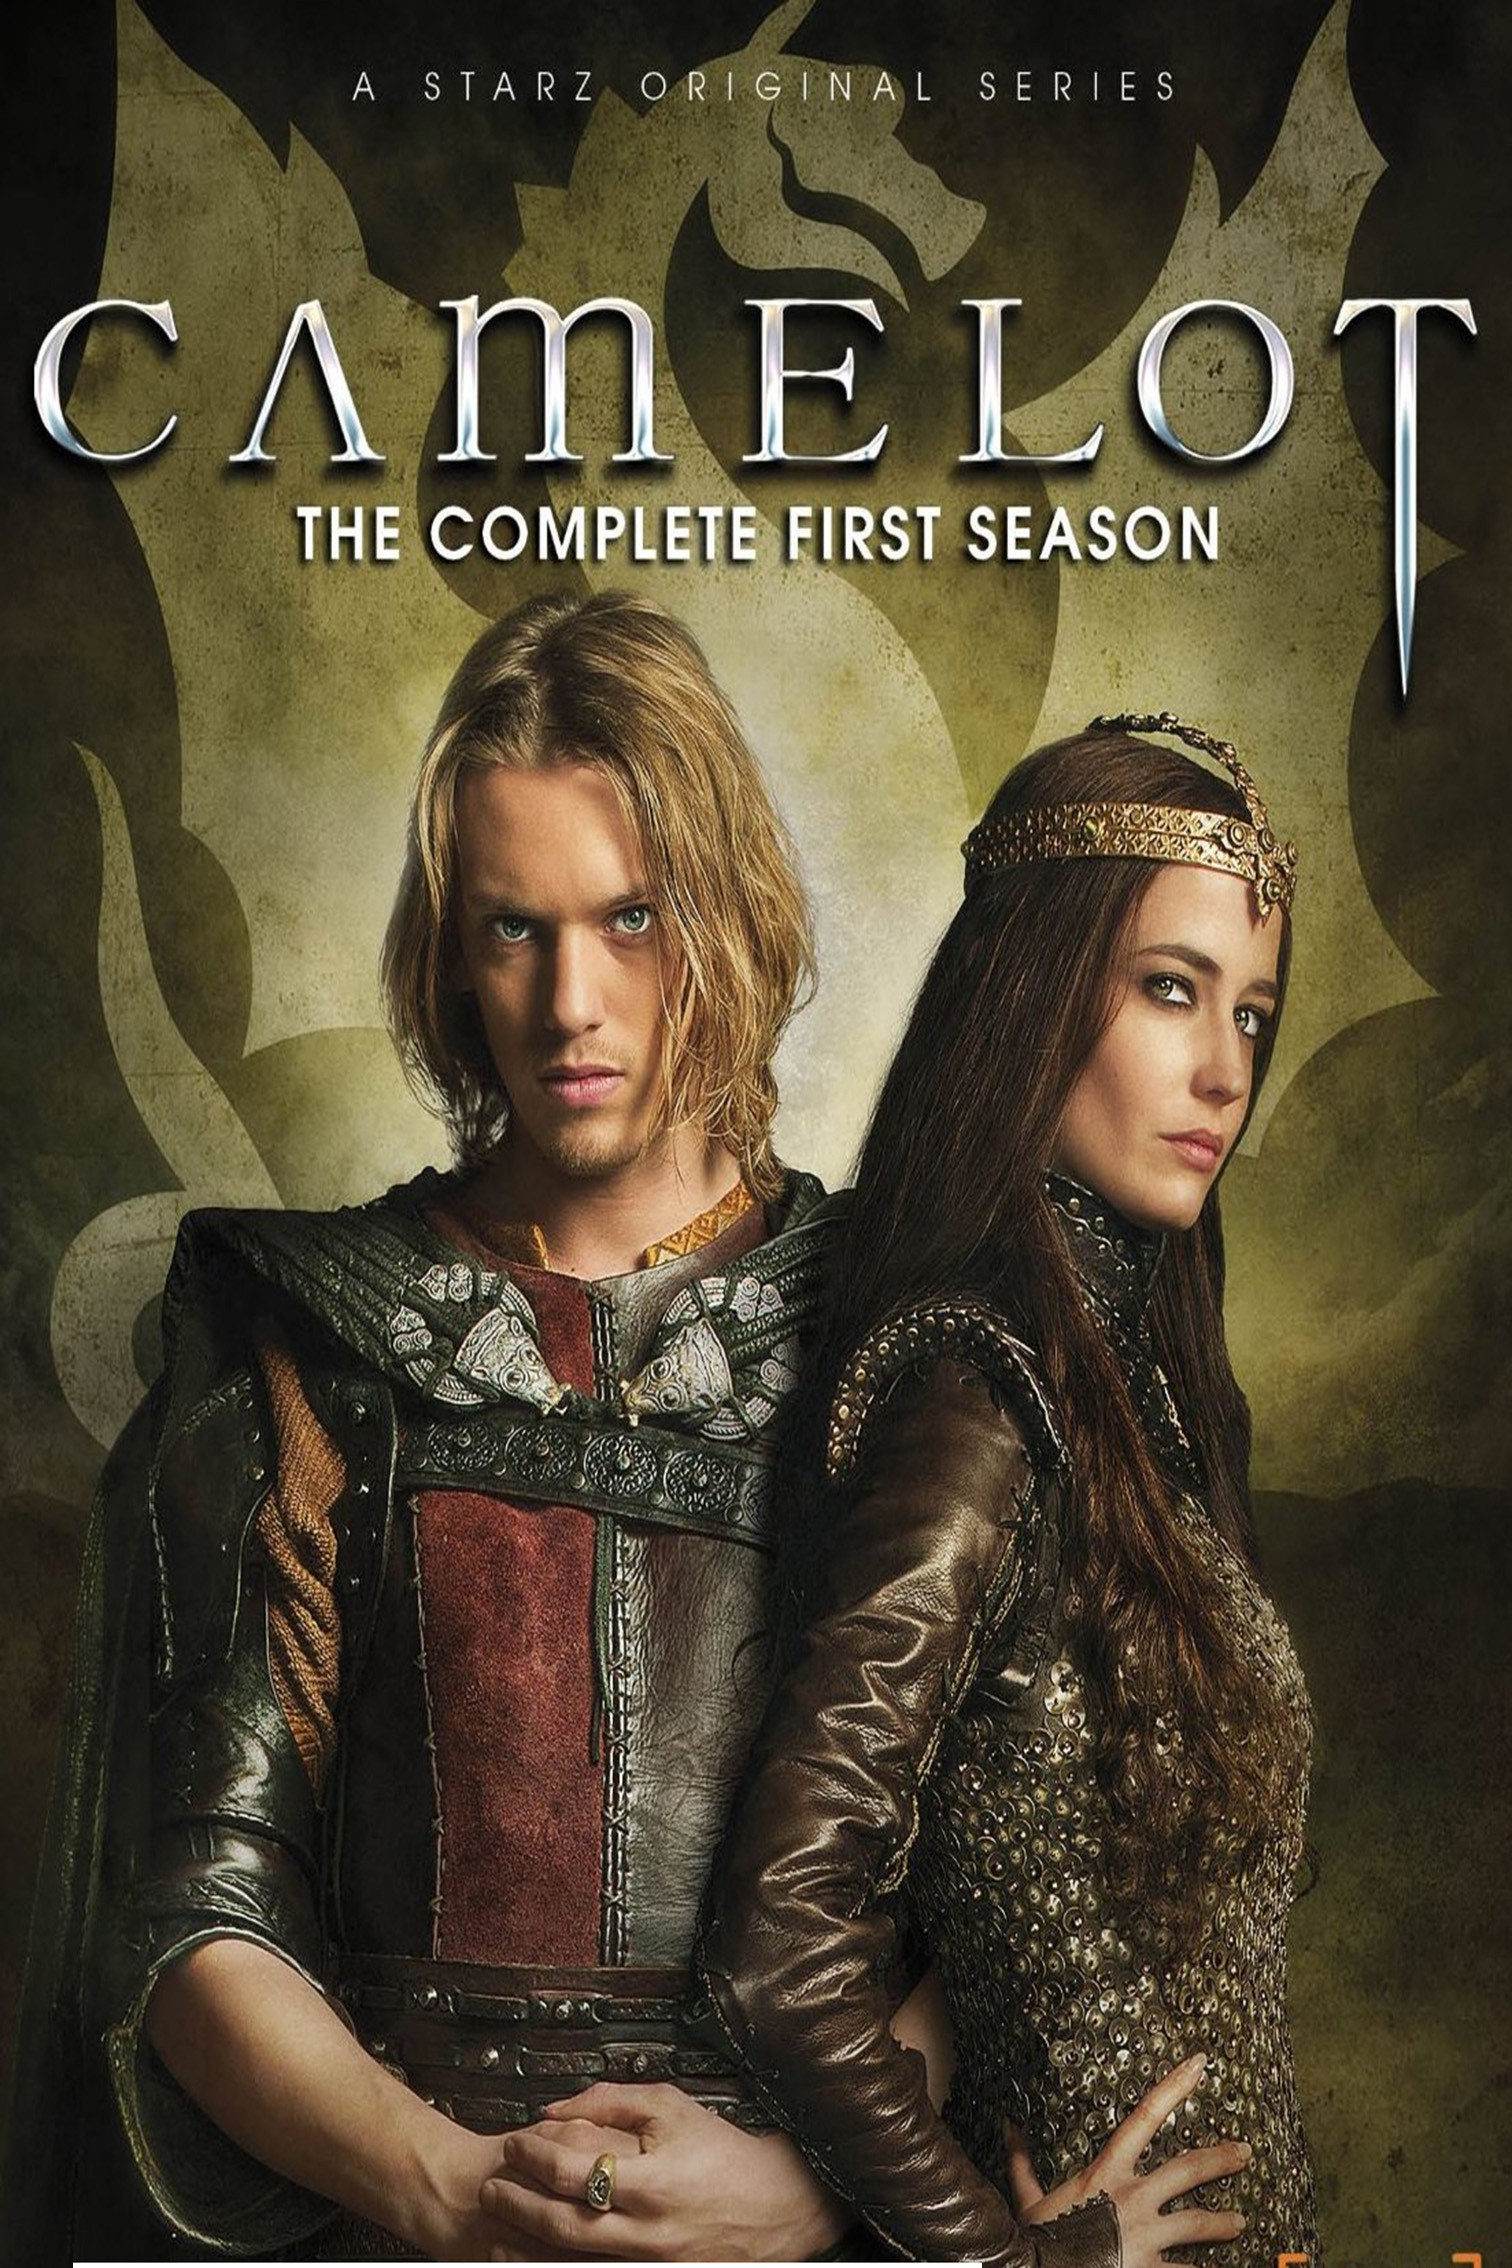 Camelot SEASON 1 Completed [2011 USA Series] Drama, Fantasy